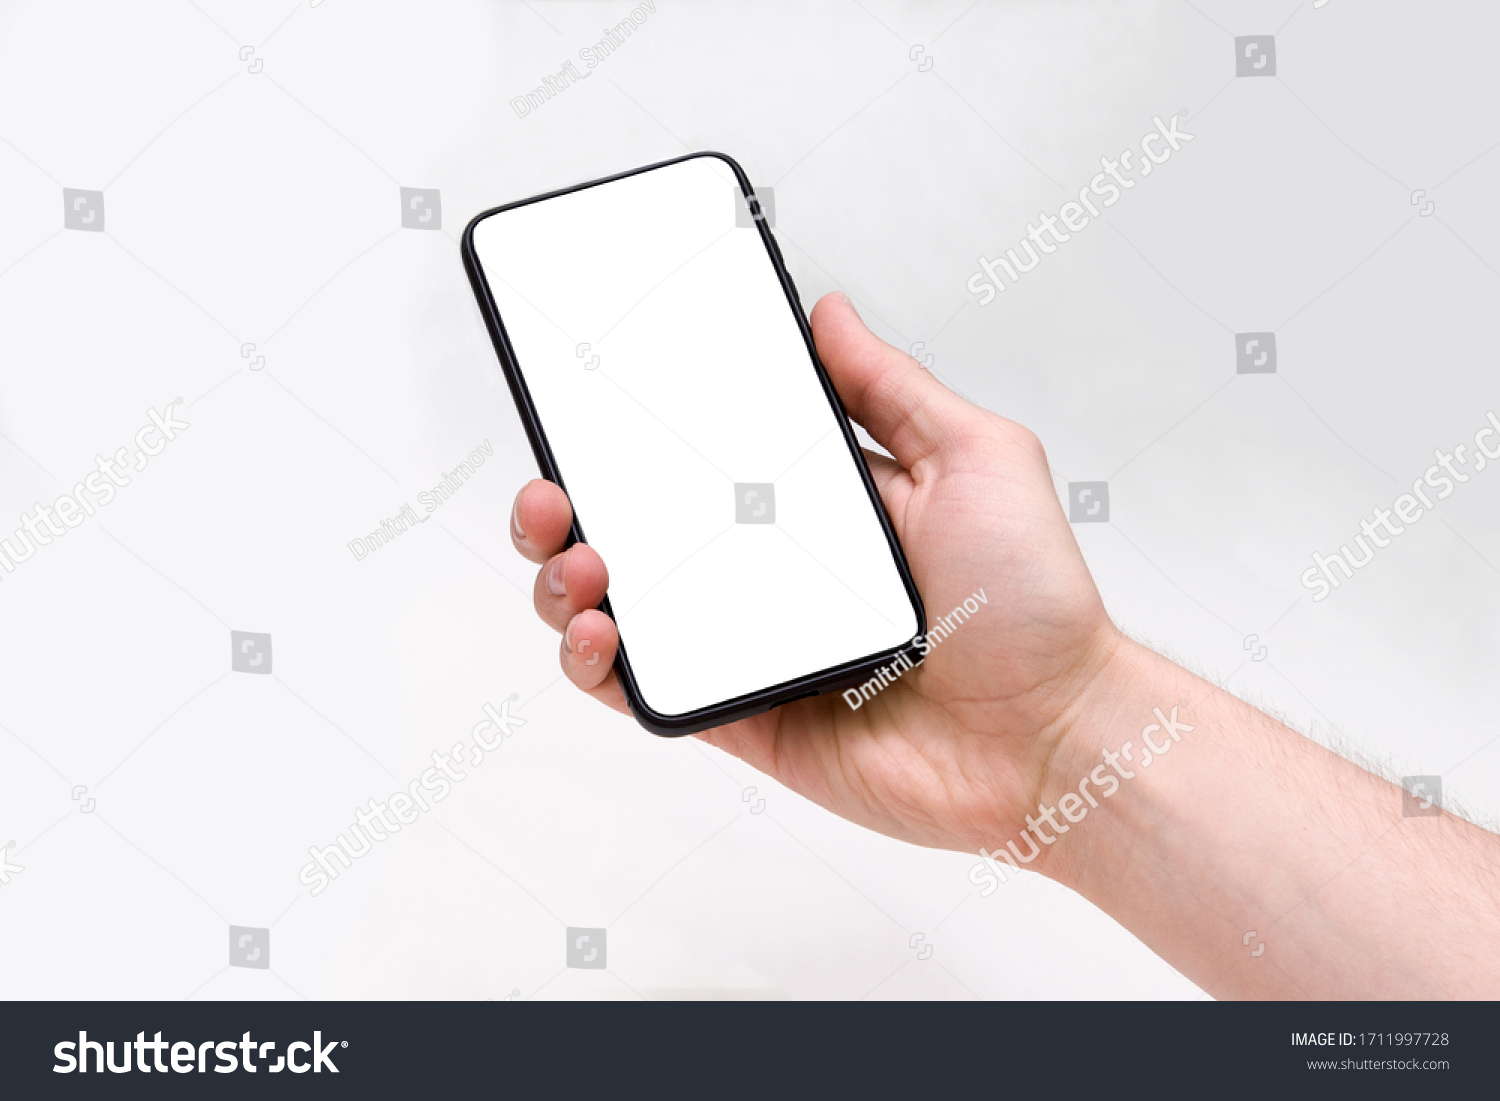 Man holding smartphone with blank screen on white background, closeup of hand. Space for text #1711997728